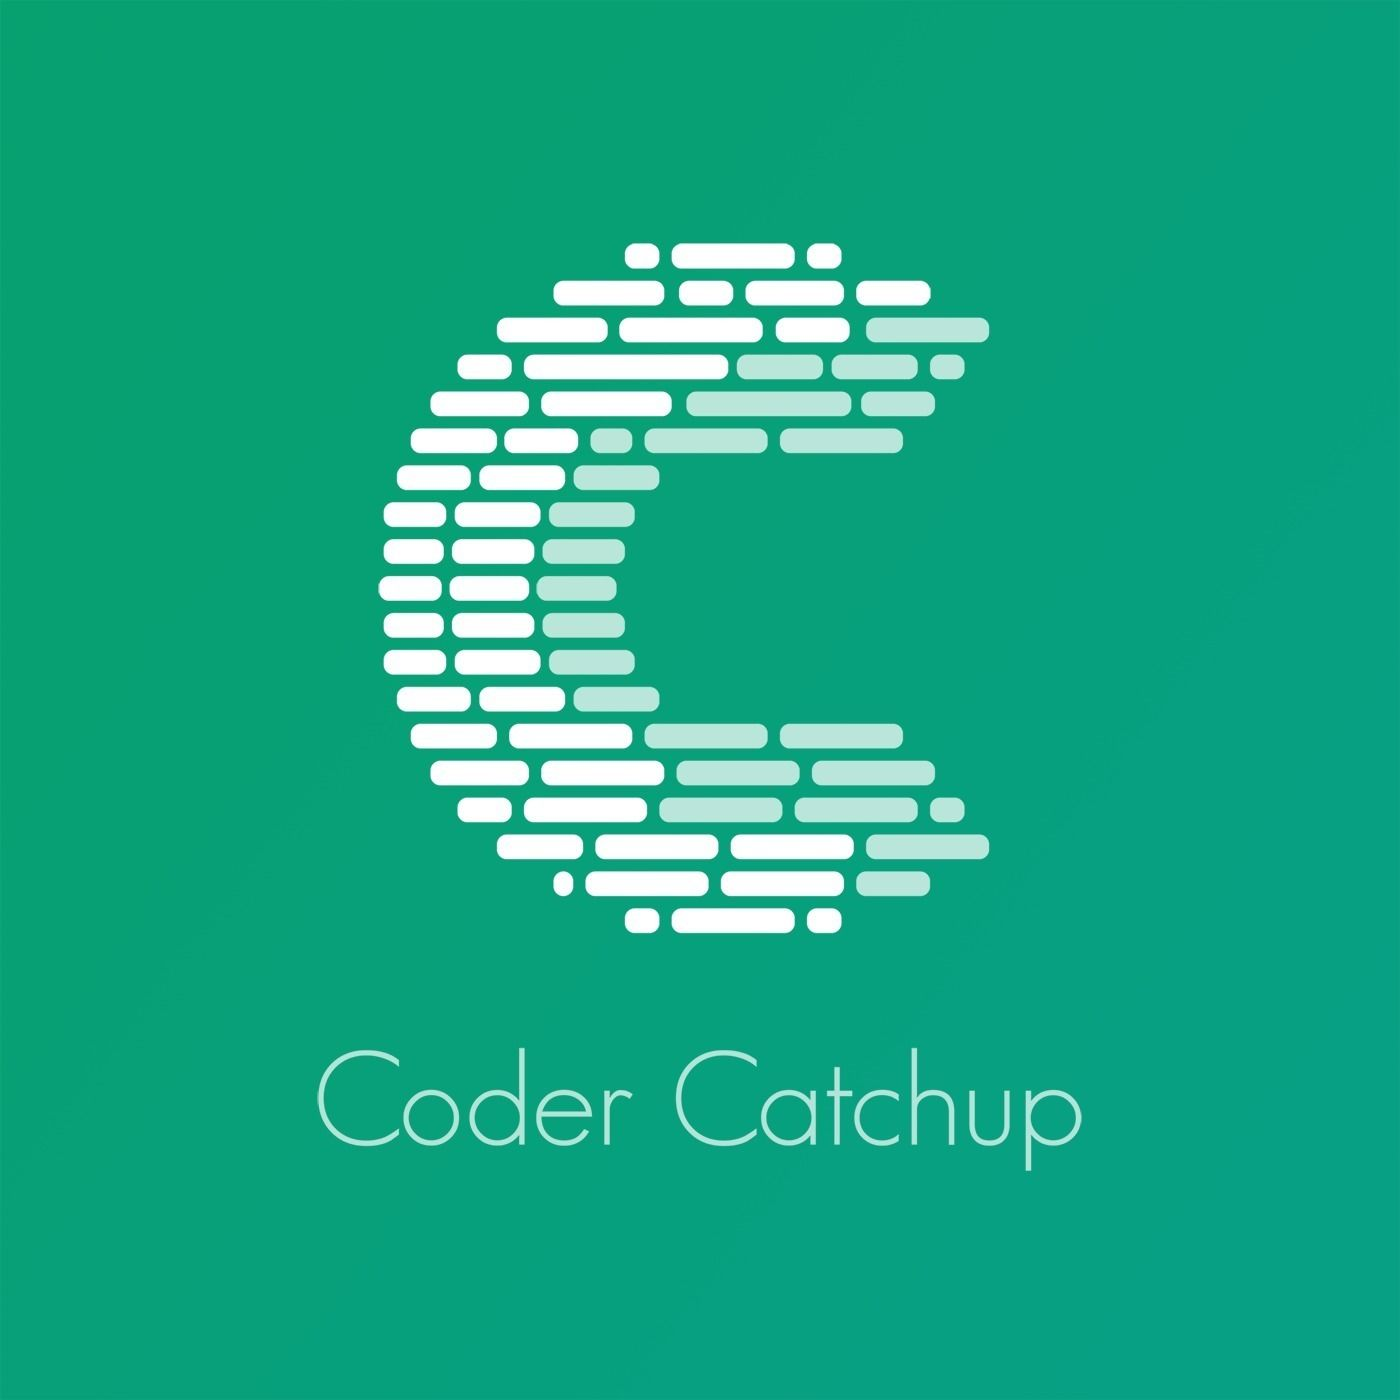 Coder Catchup